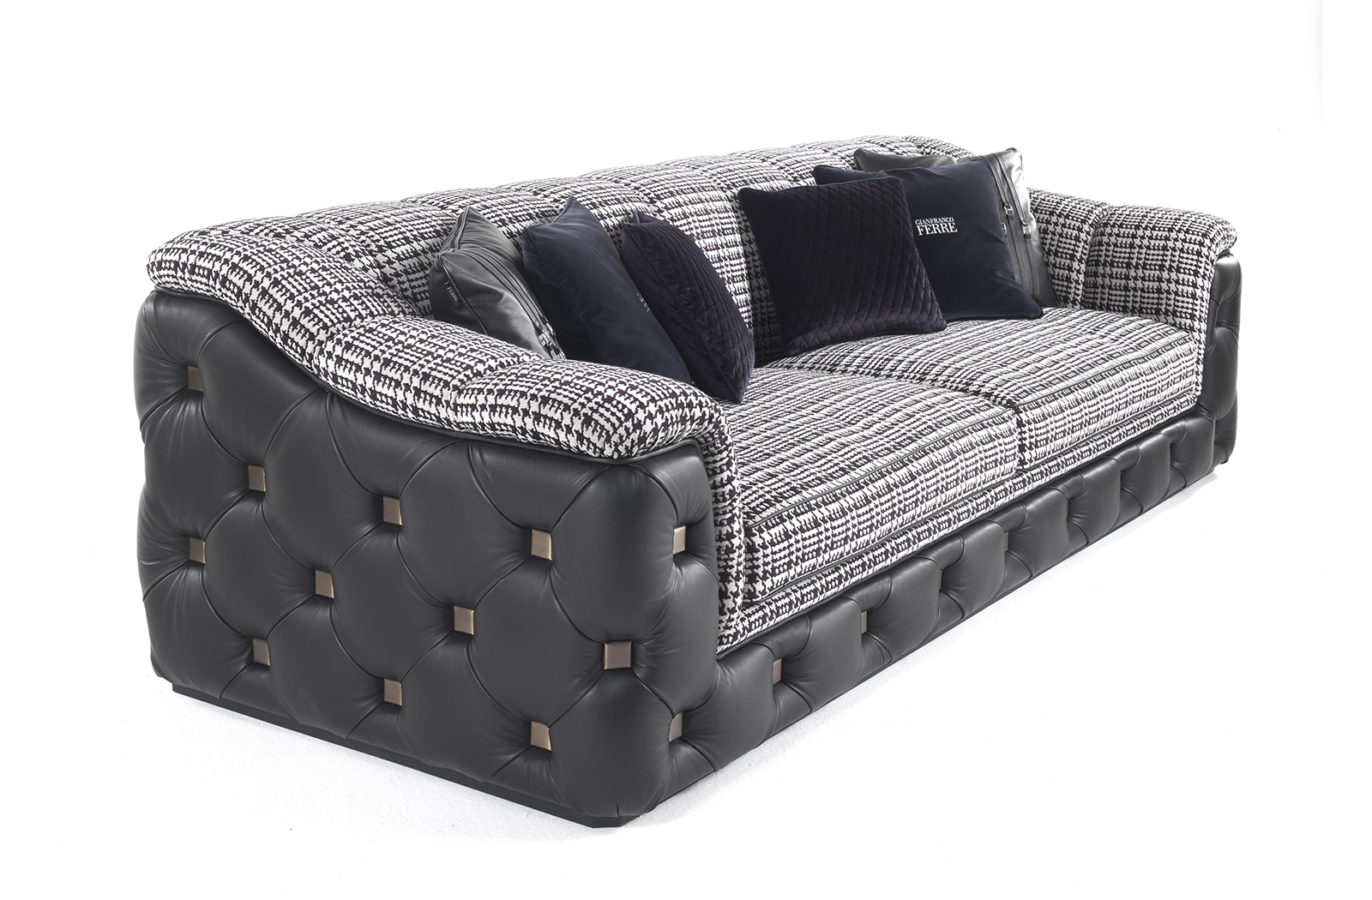 Gianfranco Ferre Home Hill Sofa